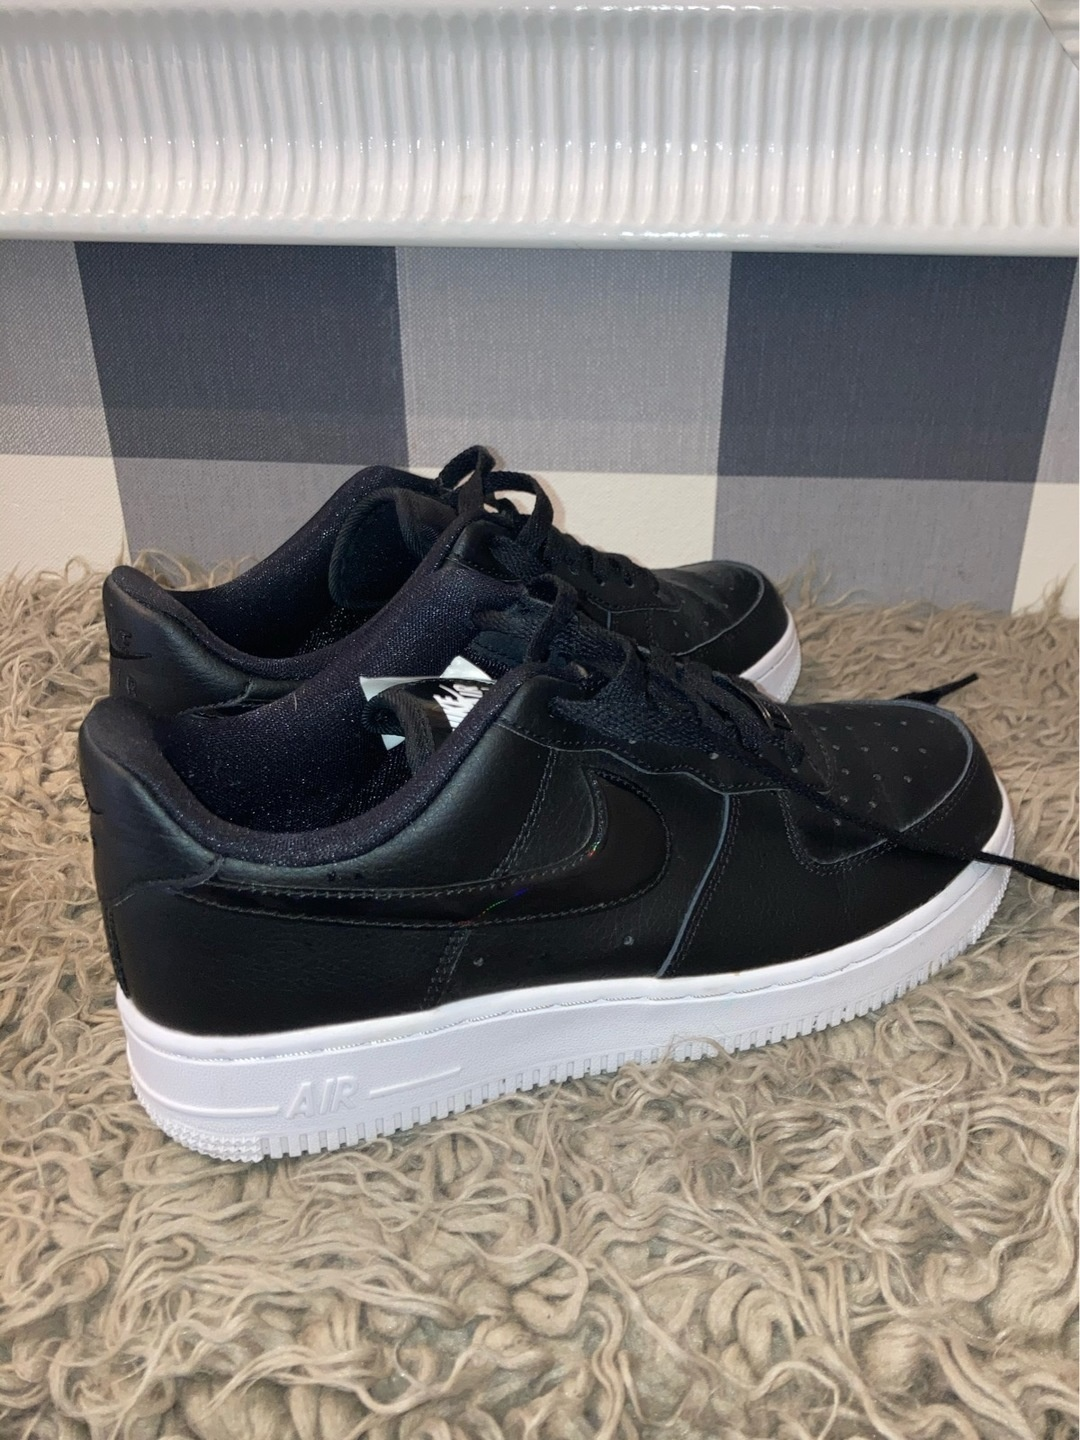 Damers sneakers - NIKE photo 3